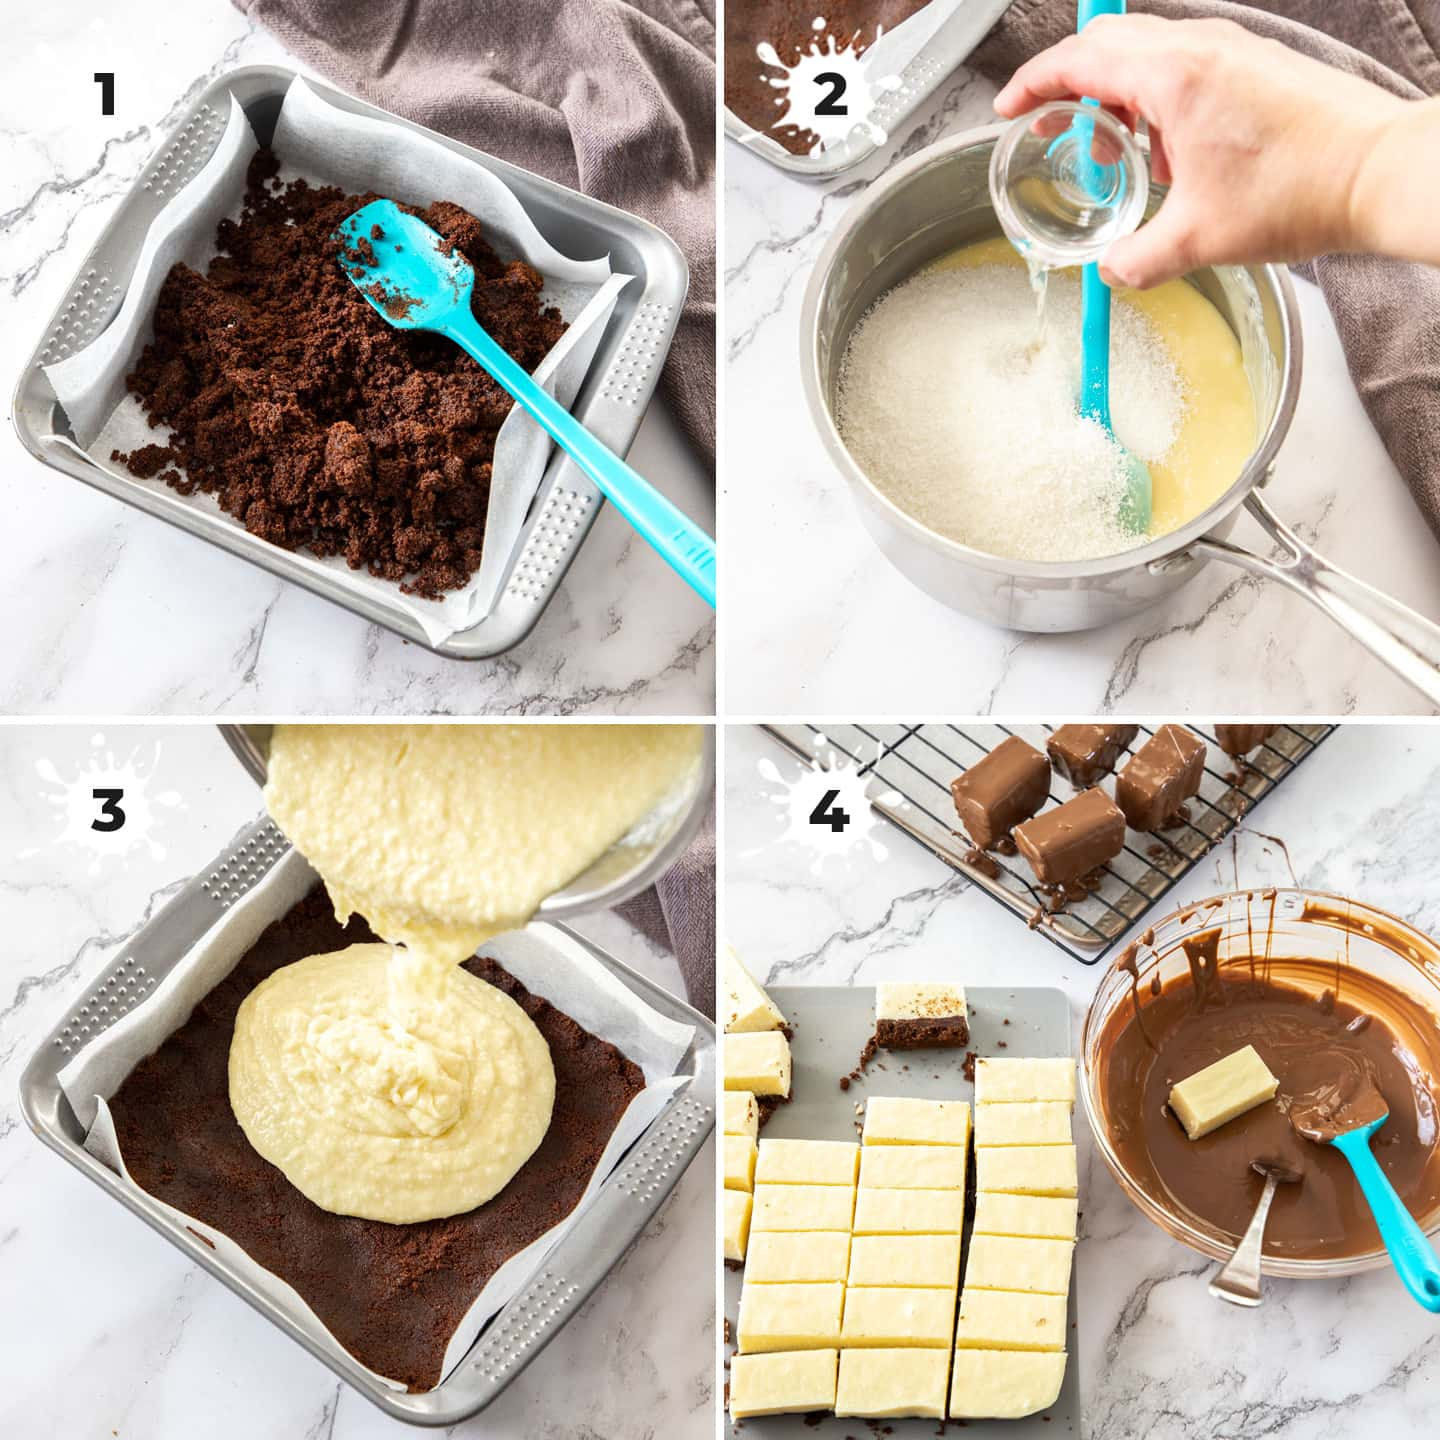 4 images showing stages of making fudge